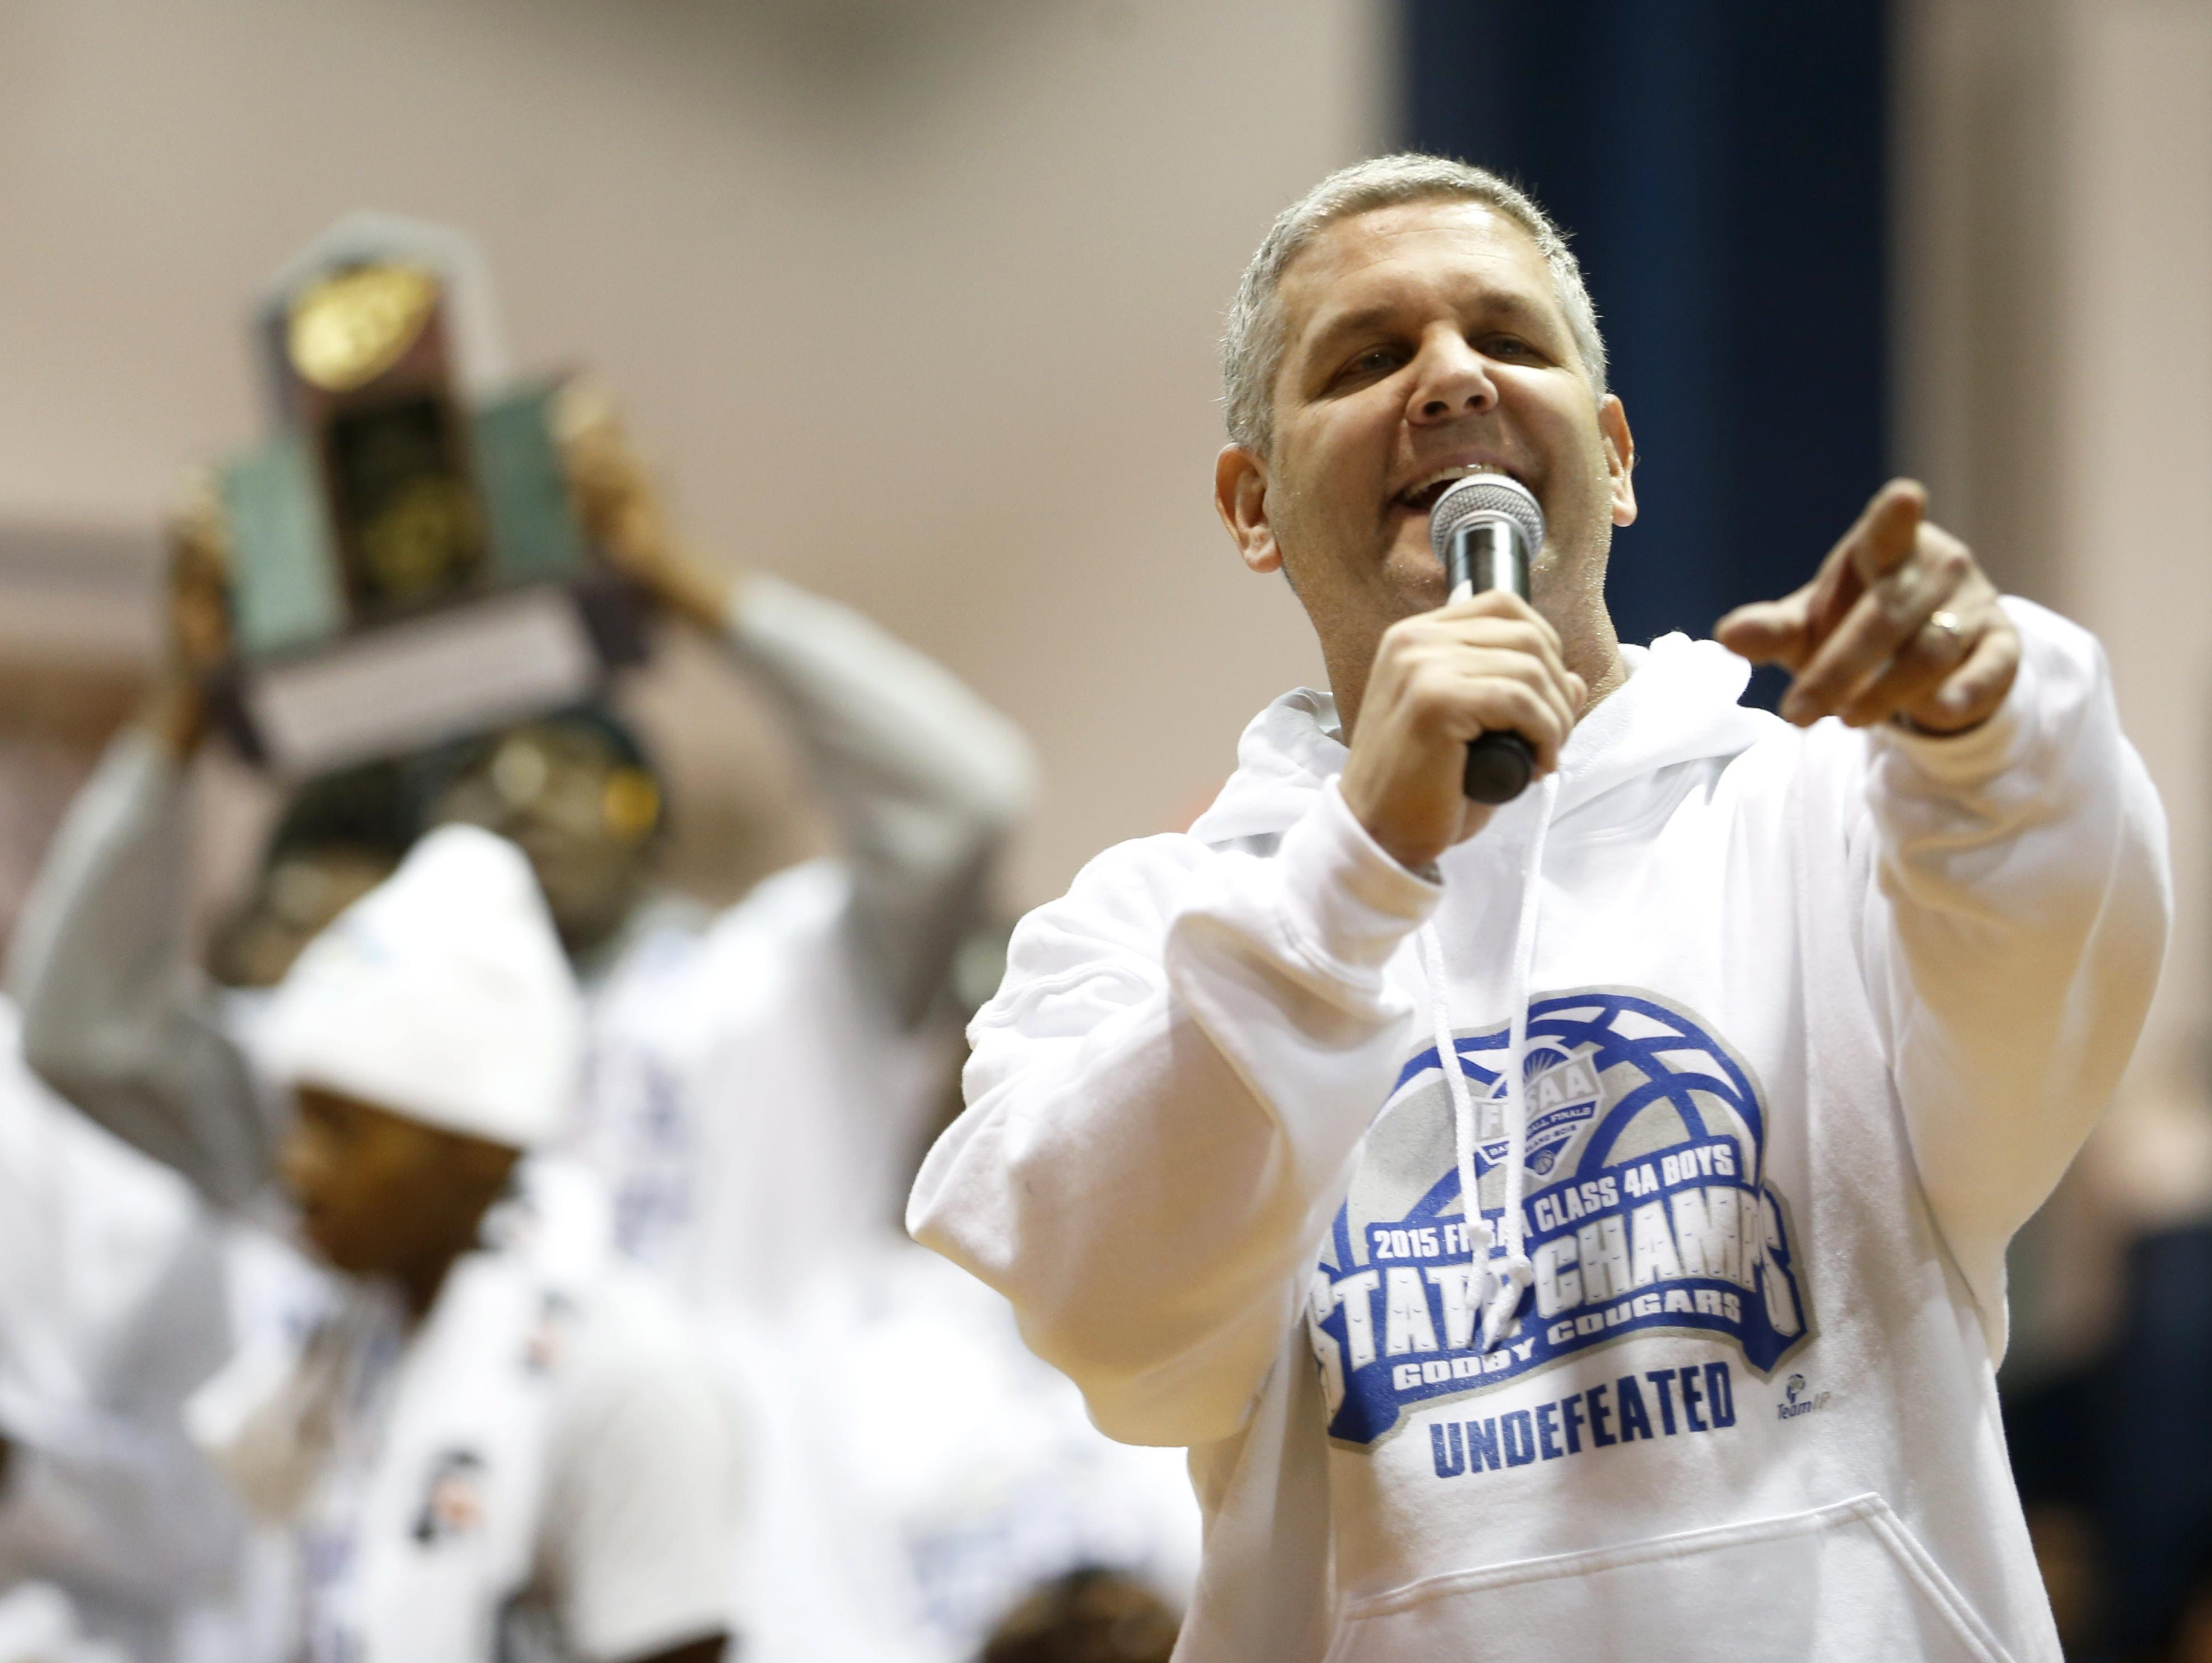 Godby coach Andy Colville speaks to the crowd of celebrators after the Cougars won a state title last season by going 31-0.